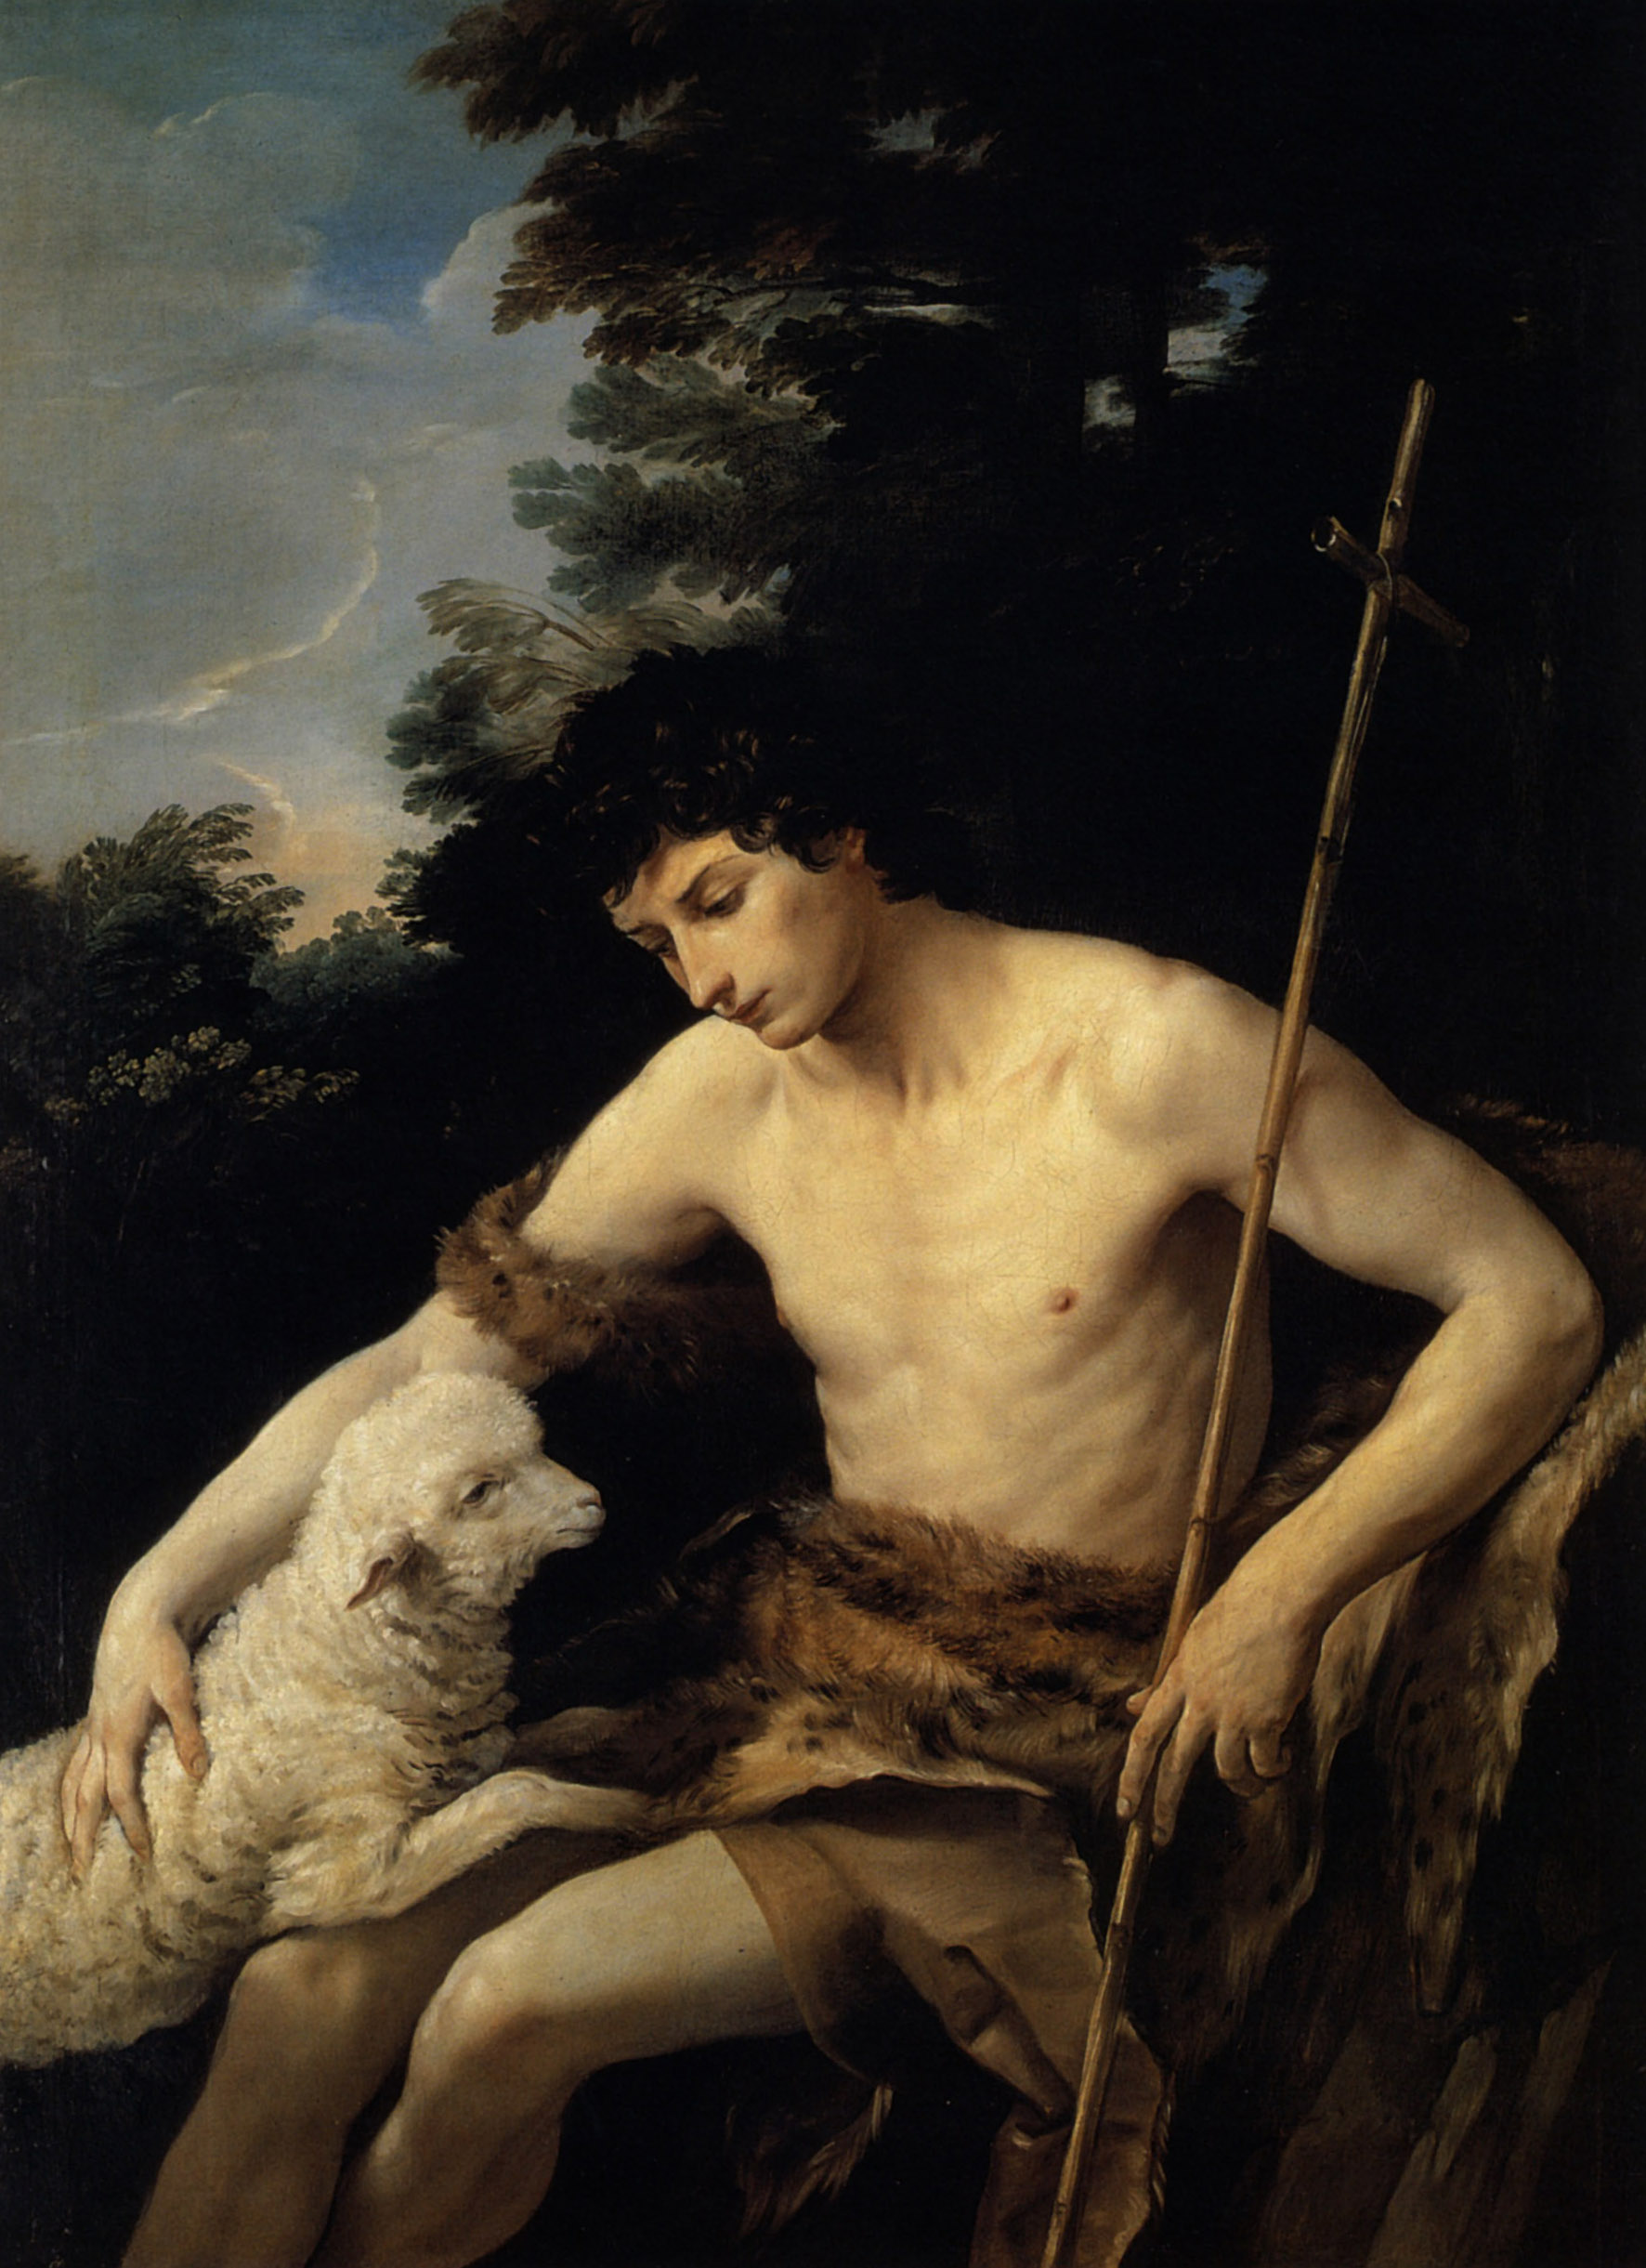 St. John the Baptist in the Wilderness by Guido Reni